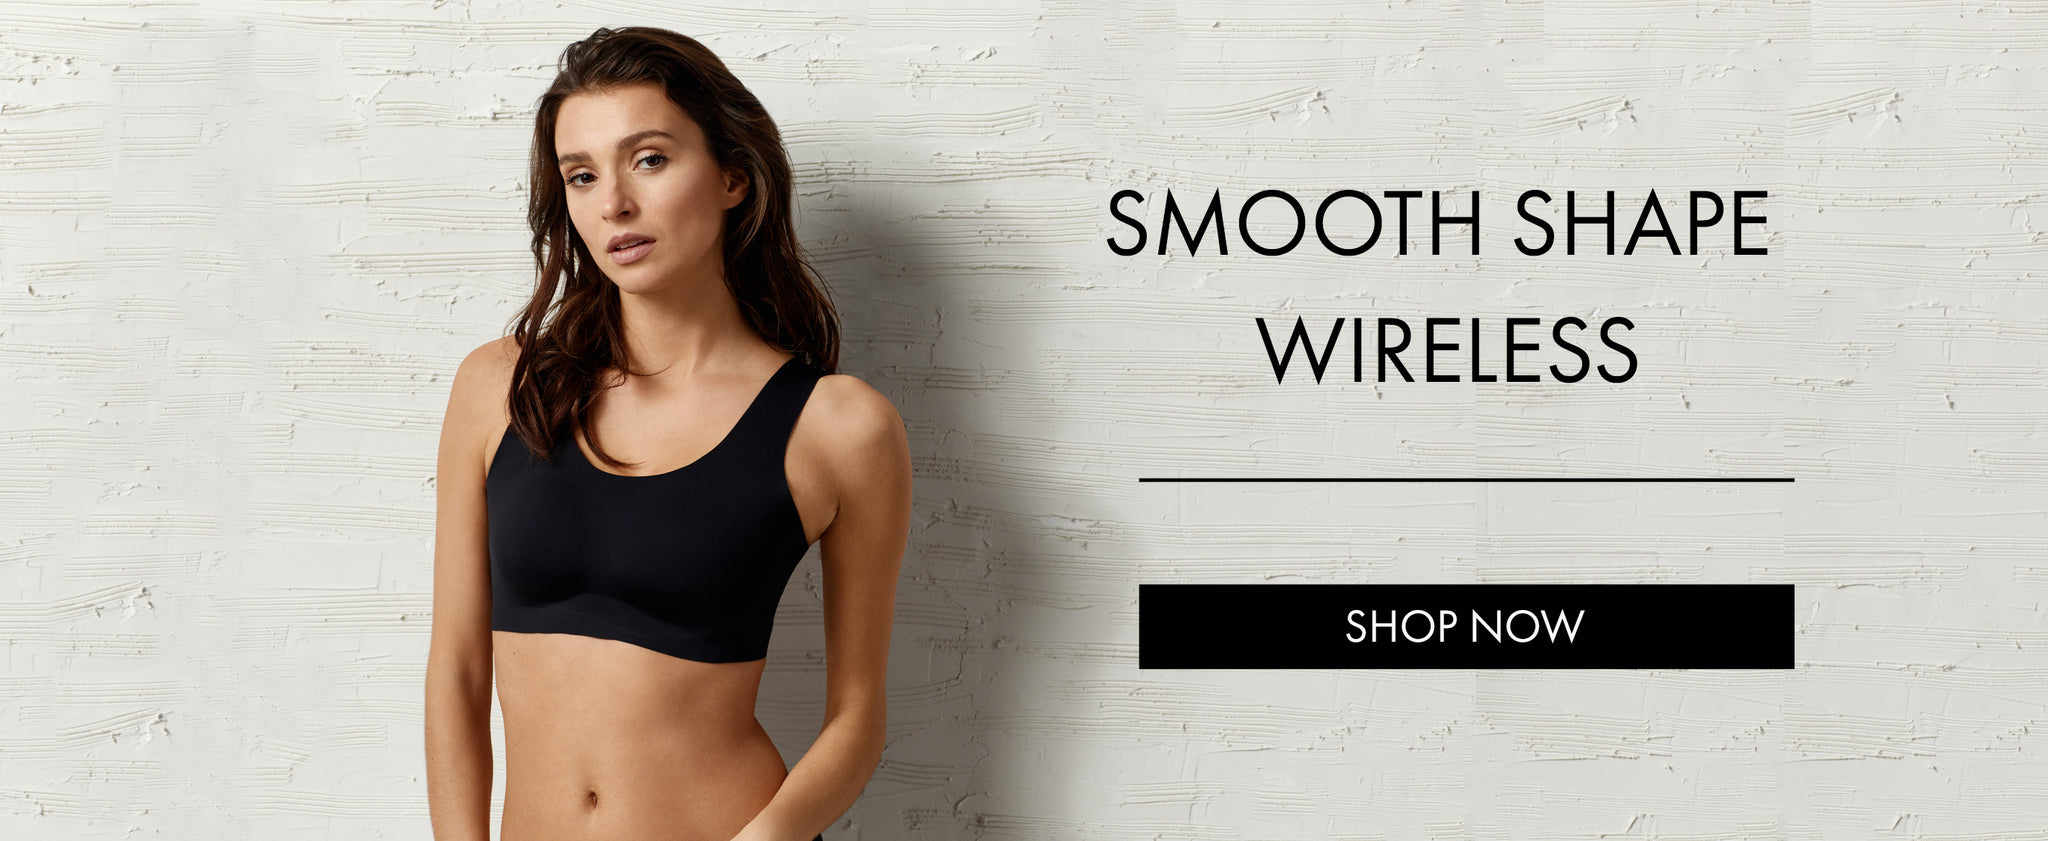 LeMystere Homepage Smooth Shape Wireless bra featured.